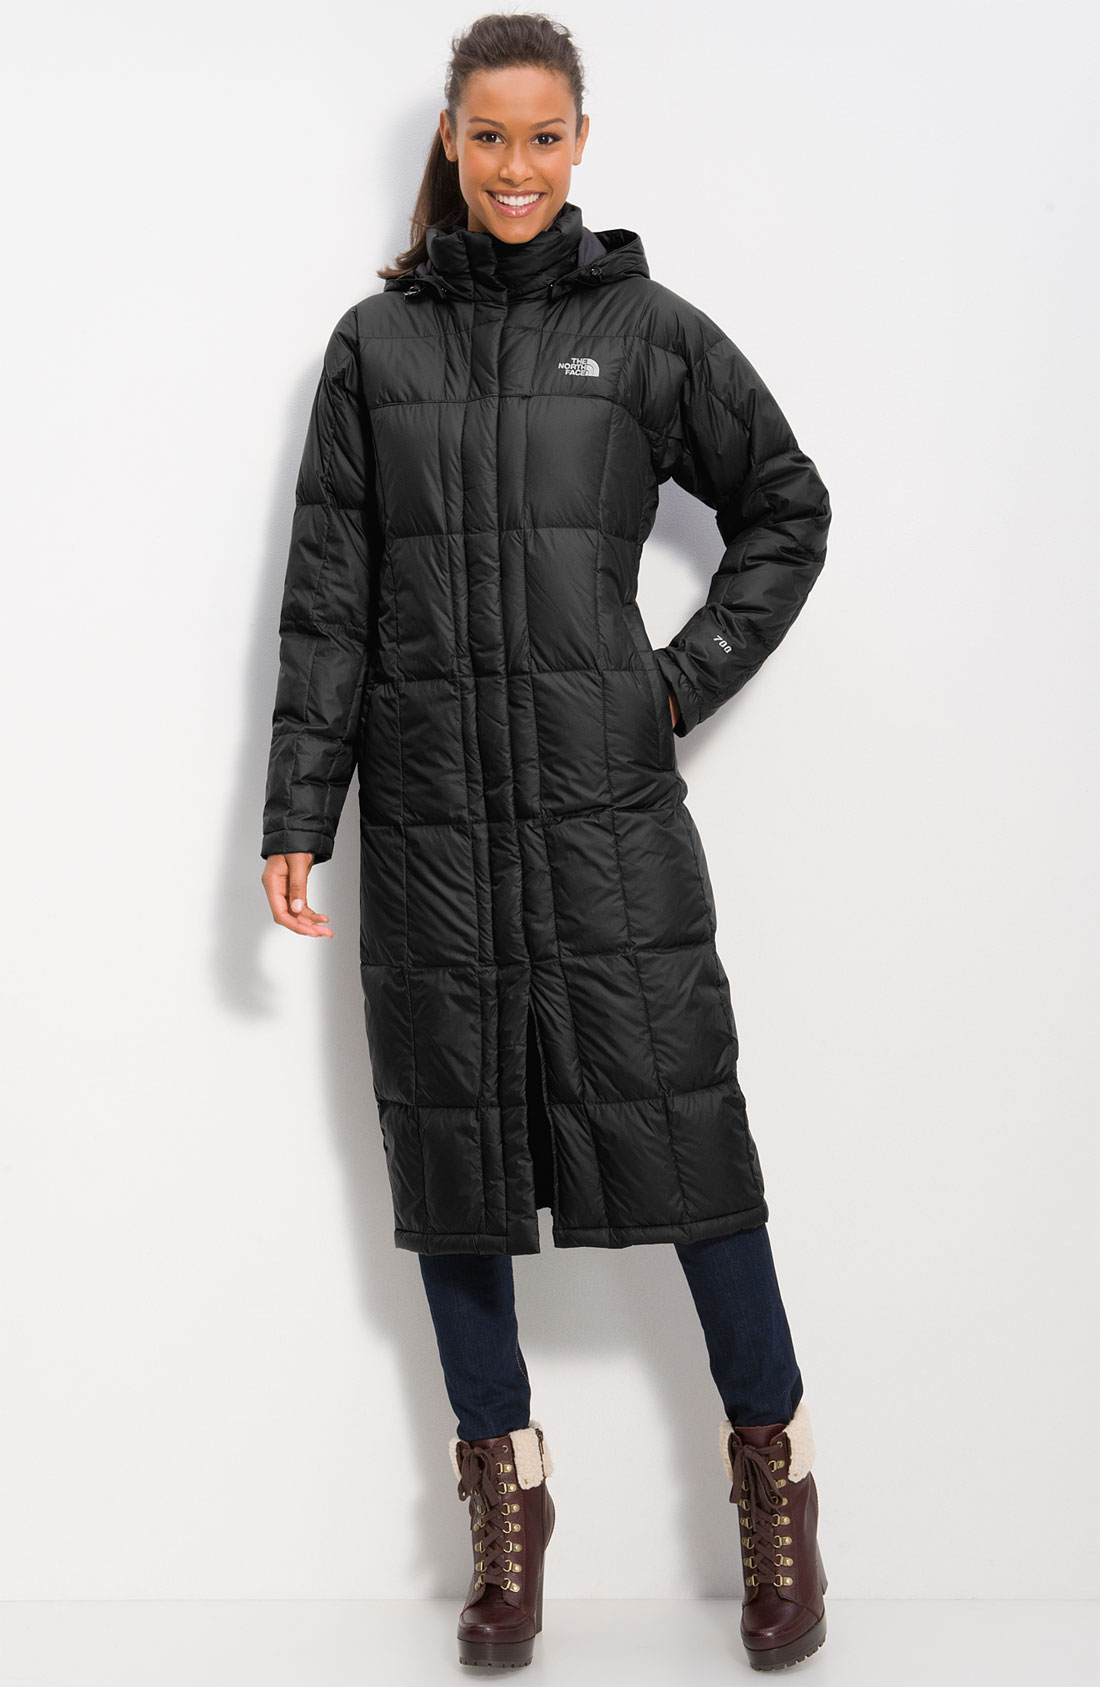 the-north-face-black-triple-c-long-down-coat -product-2-2559283-313425554.jpeg